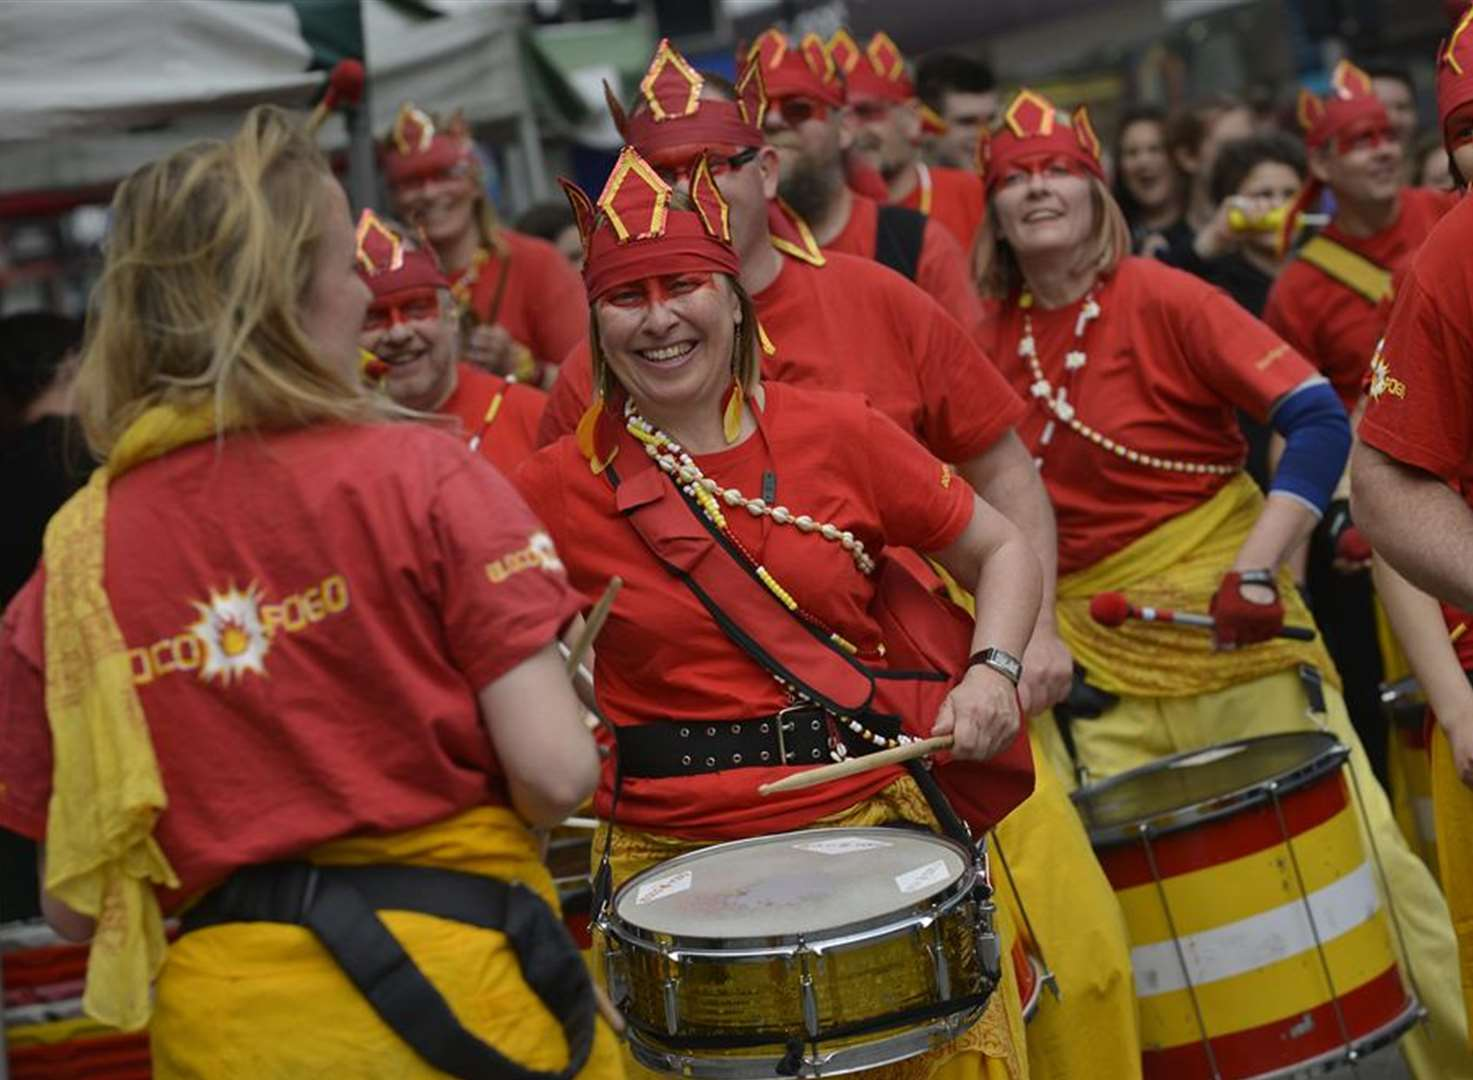 Drumbeats echo through town at arty festival